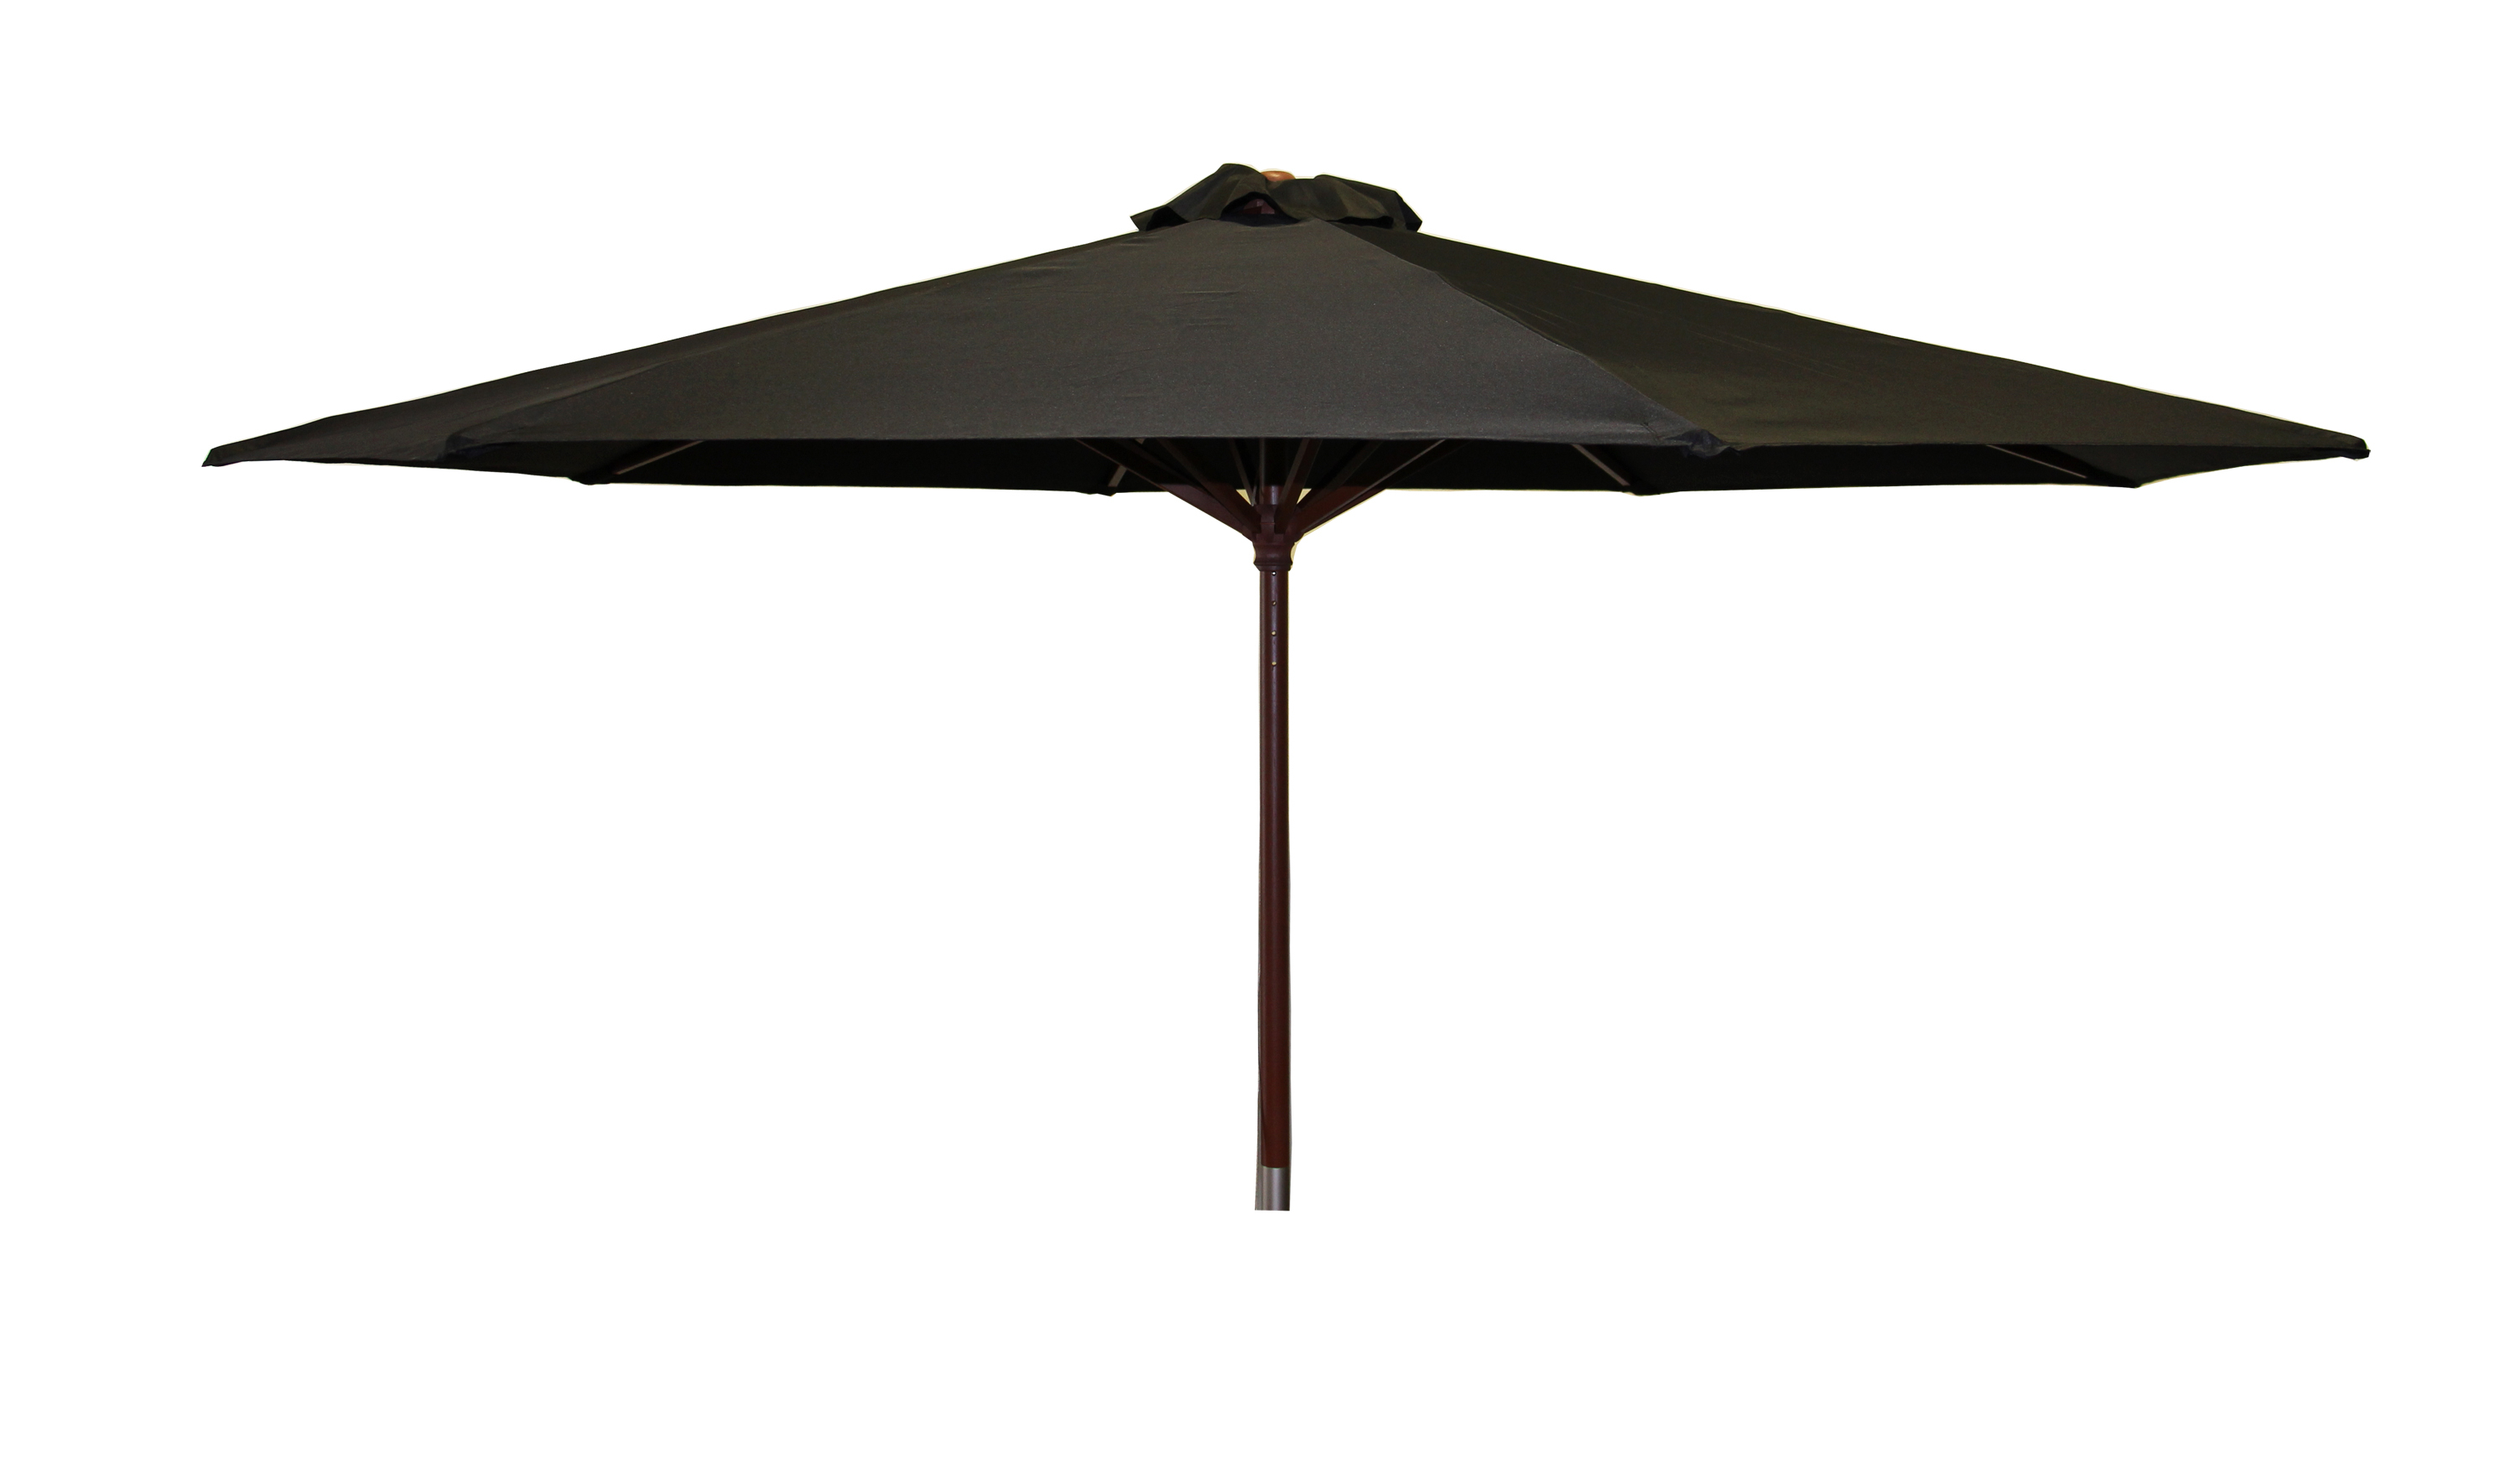 Destination Gear Square Market Umbrellas For Recent Destinationgear Classic Wood 9' Market Umbrella, Black (View 4 of 20)